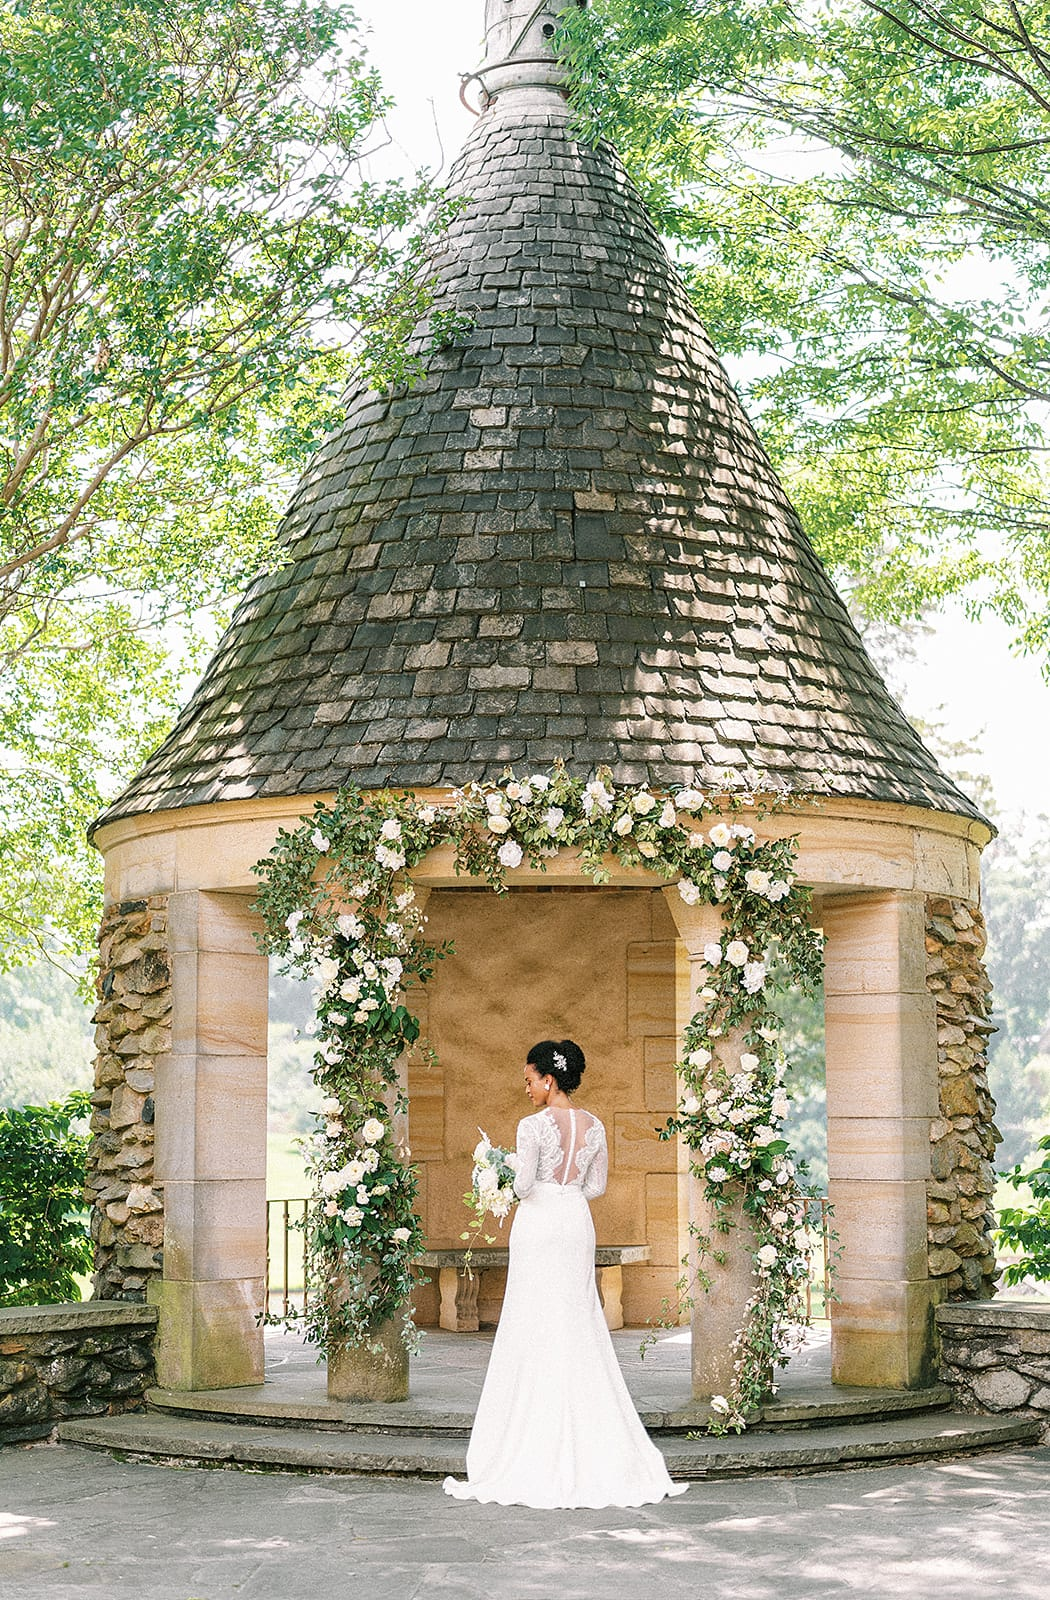 Bride in a wedding gown under the stone gazebo and floral arch at Graylyn Estate